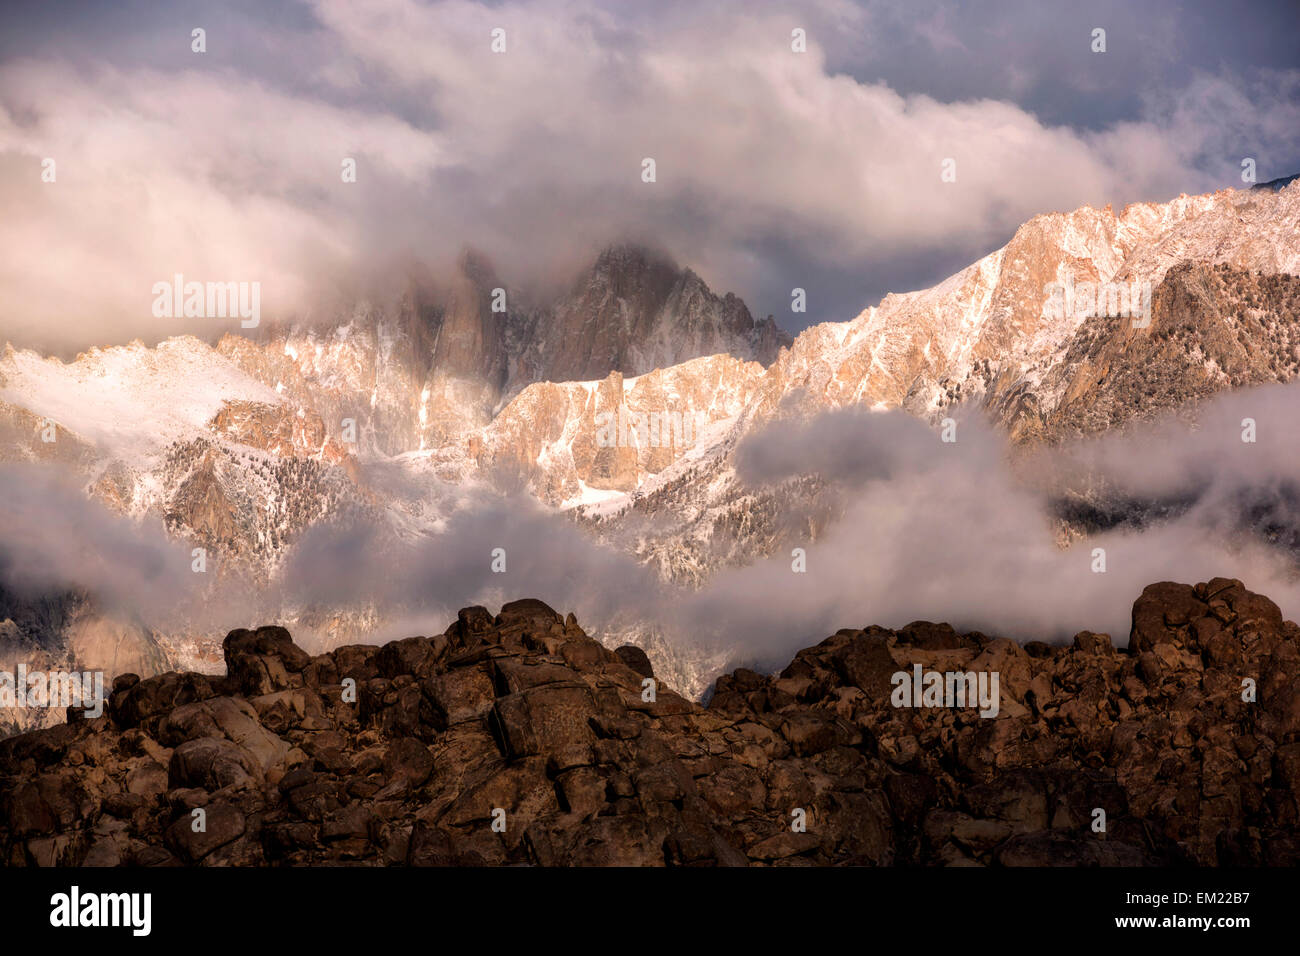 A storm moves in over Mount Whitney - Stock Image